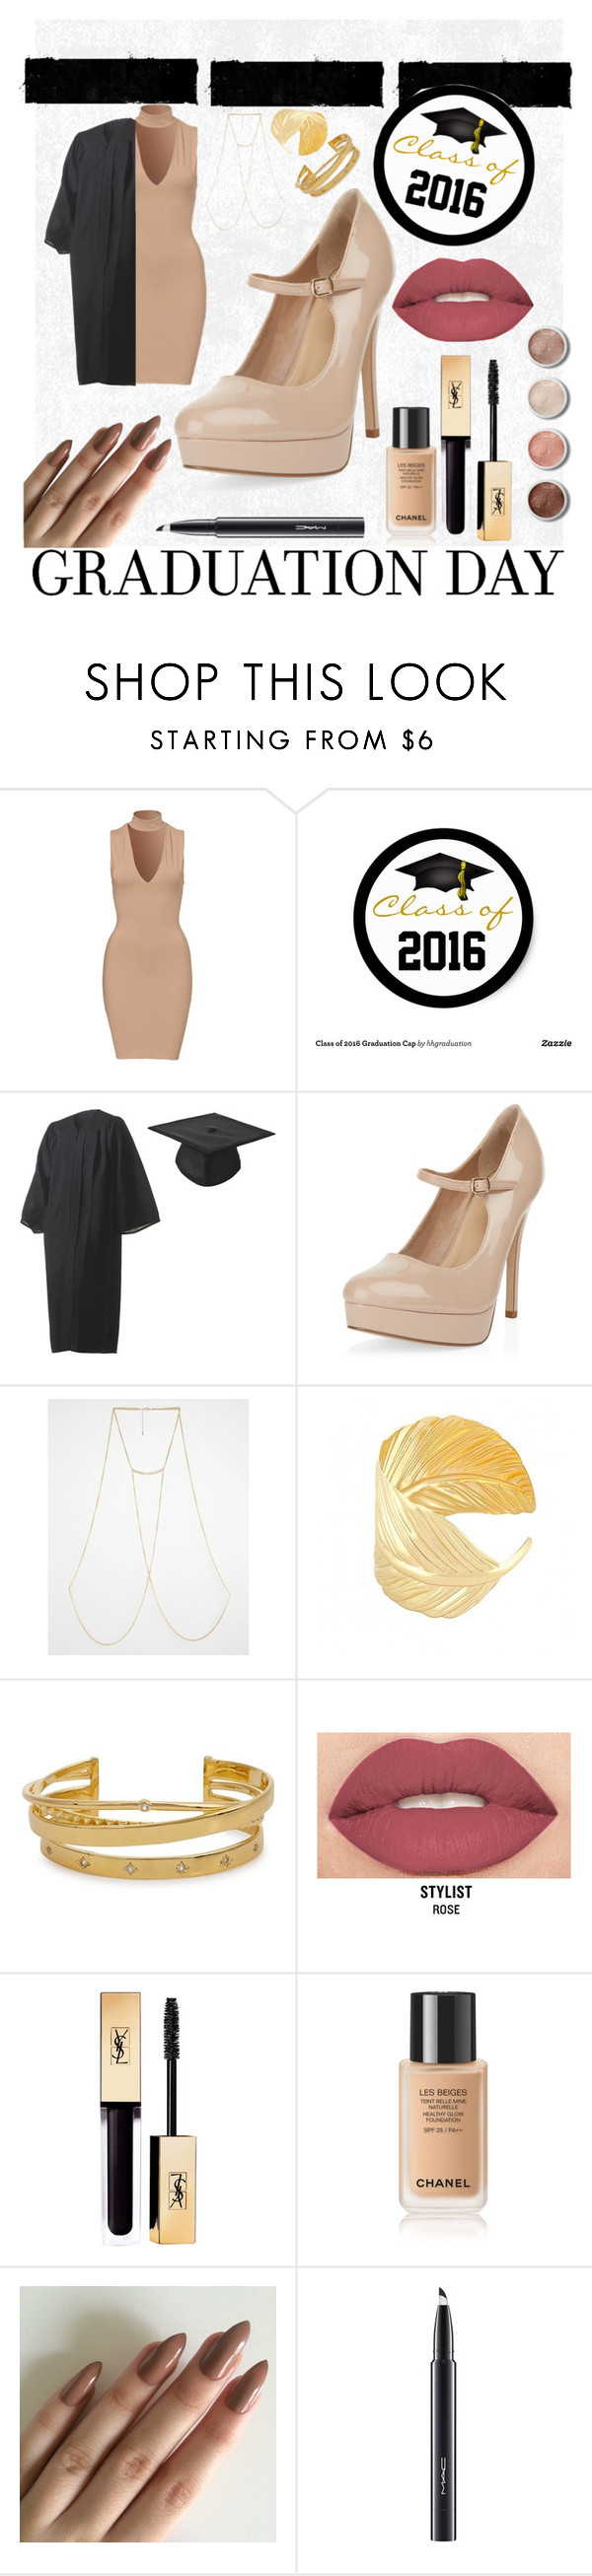 """Grad day~Sophisticated"" by demixb on Polyvore featuring New Look, Monki, Elizabeth and James, Smashbox, Terre Mère, MAC Cosmetics and graduationdaydress"